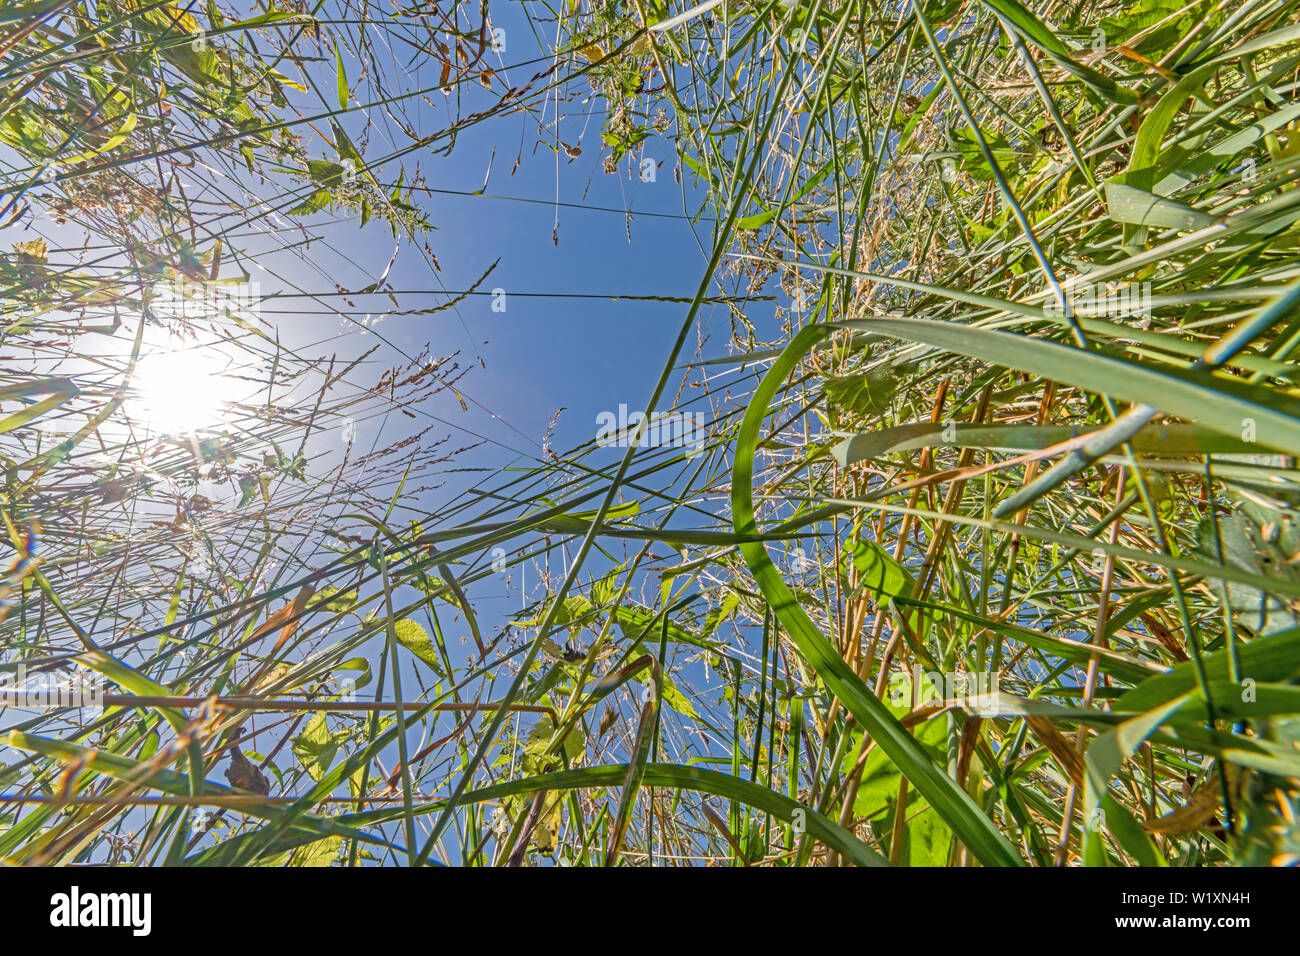 Summer meadow from the frog's perspective with blue sky and bright sun - Stock Image